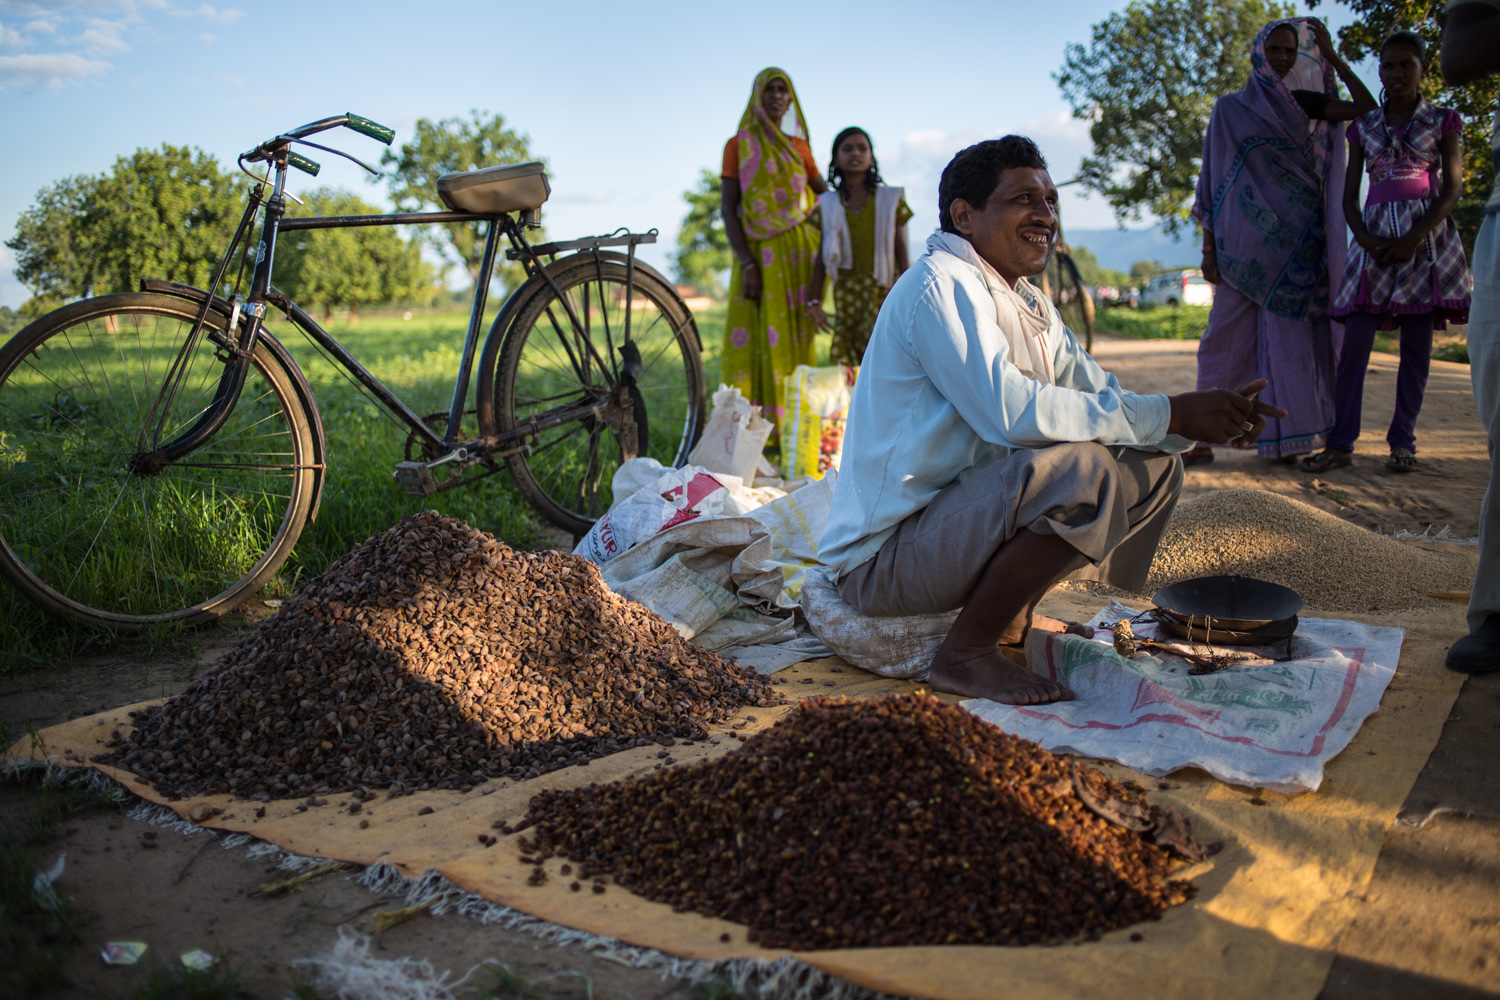 A trader at the Amelia's weekly market selling dried  mahua  flowers. These are used in the local cuisine, medicines, cosmetics and a popular alcoholic drink – a kilo of these flowers can fetch up to Rs 25 in the local market.